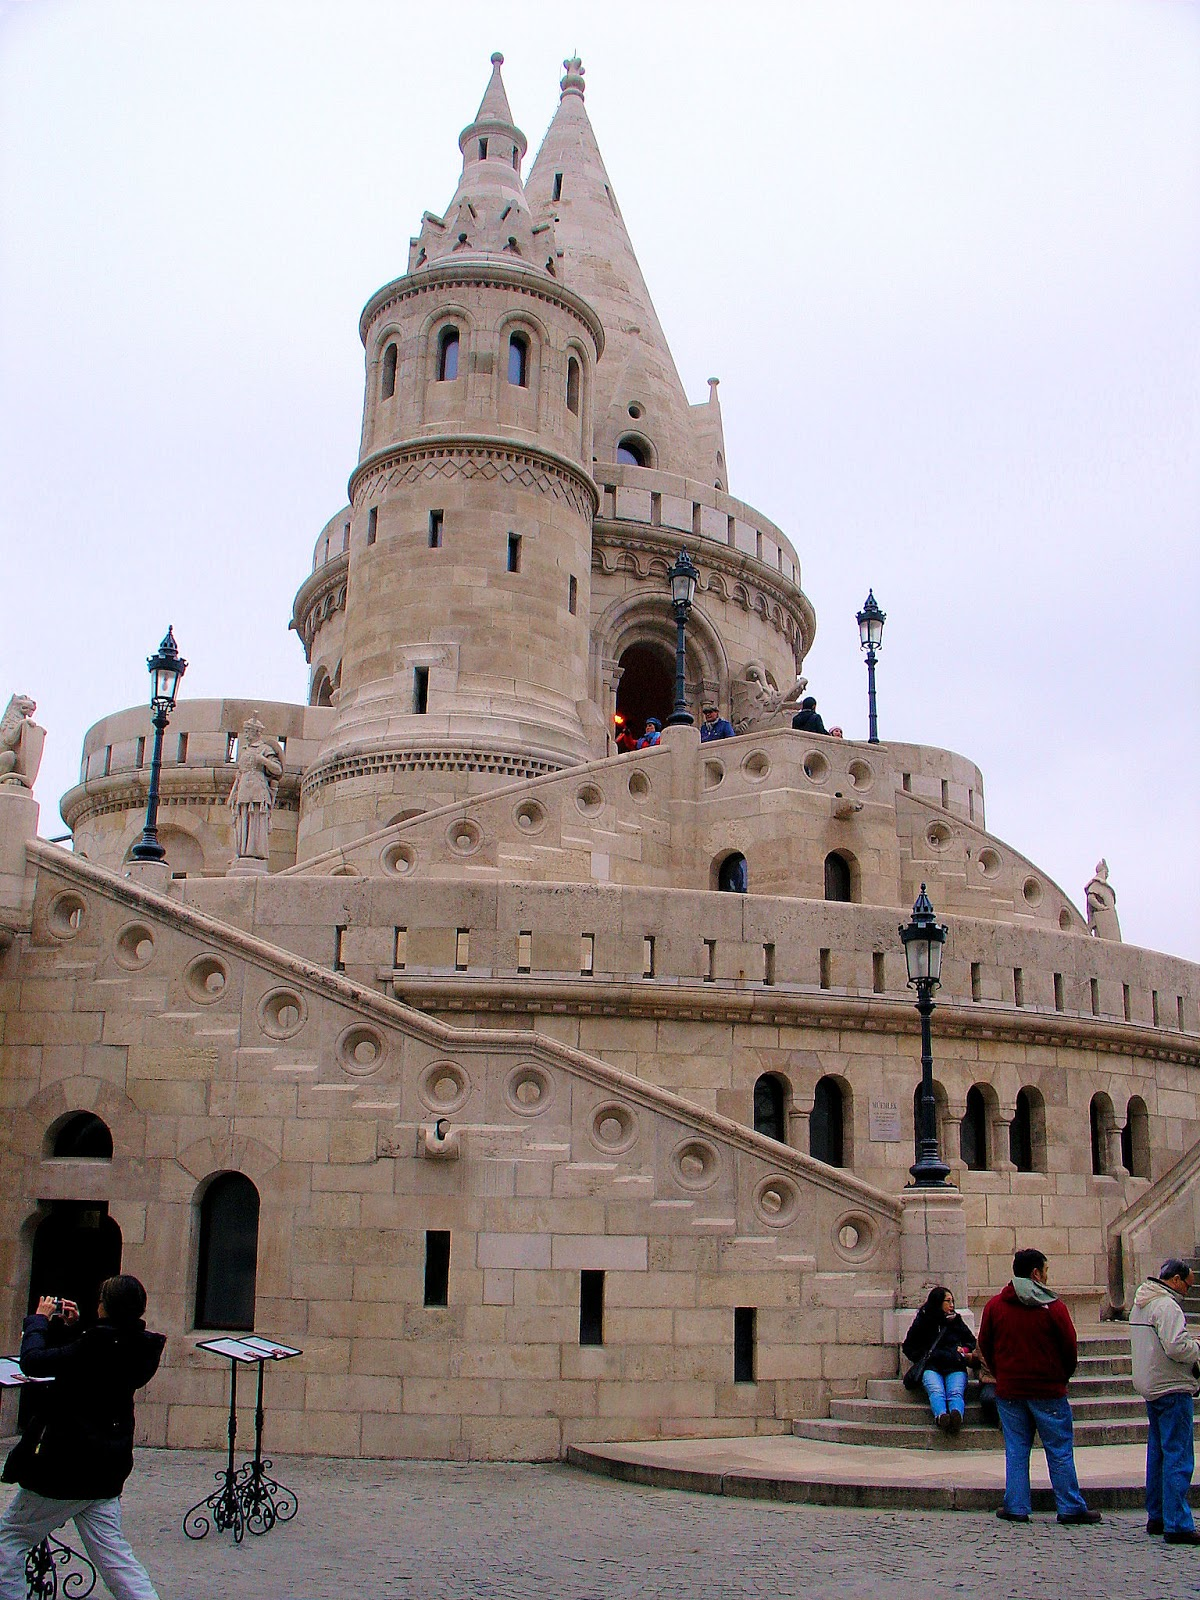 Fanciful designs of the 20th-century Fishermen's Bastion in Budapest, Hungary.